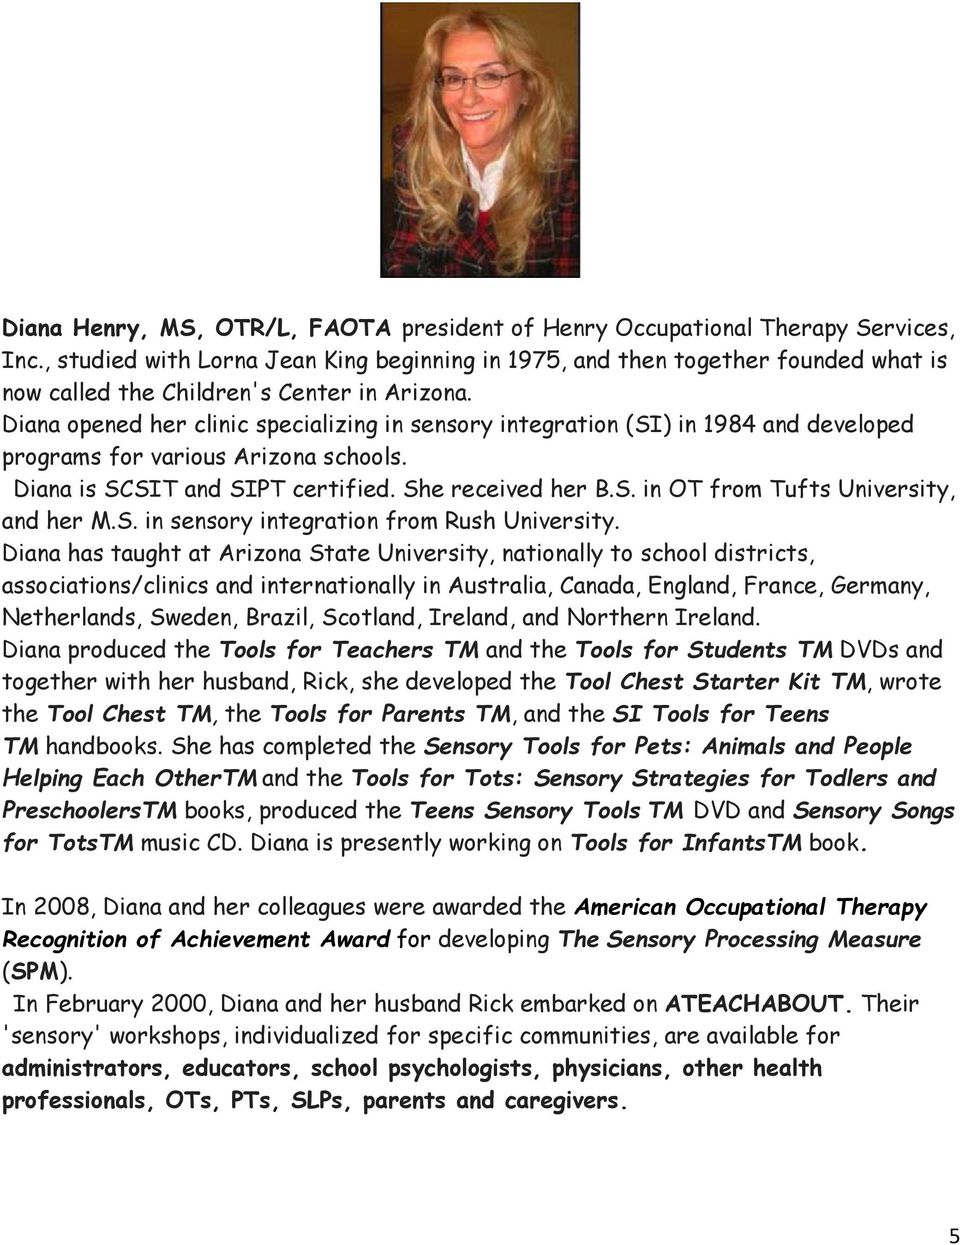 Diana opened her clinic specializing in sensory integration (SI) in 1984 and developed programs for various Arizona schools. Diana is SCSIT and SIPT certified. She received her B.S. in OT from Tufts University, and her M.